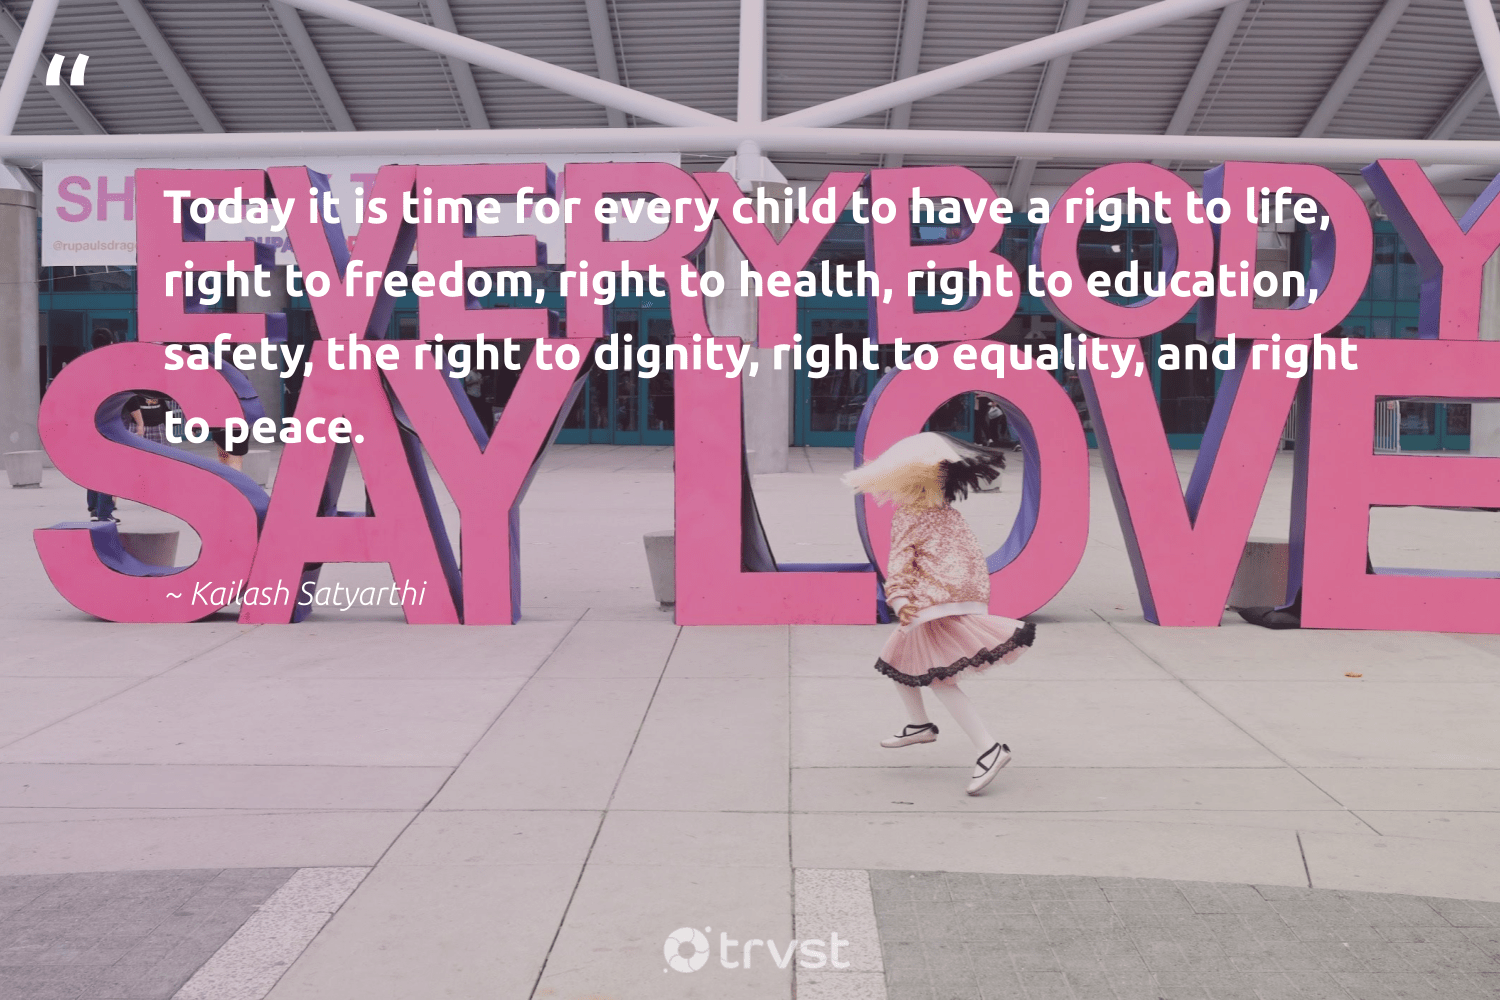 """Today it is time for every child to have a right to life, right to freedom, right to health, right to education, safety, the right to dignity, right to equality, and right to peace.""  - Kailash Satyarthi #trvst #quotes #equality #peace #freedom #education #health #equalopportunity #makeadifference #bethechange #collectiveaction #empowerment"